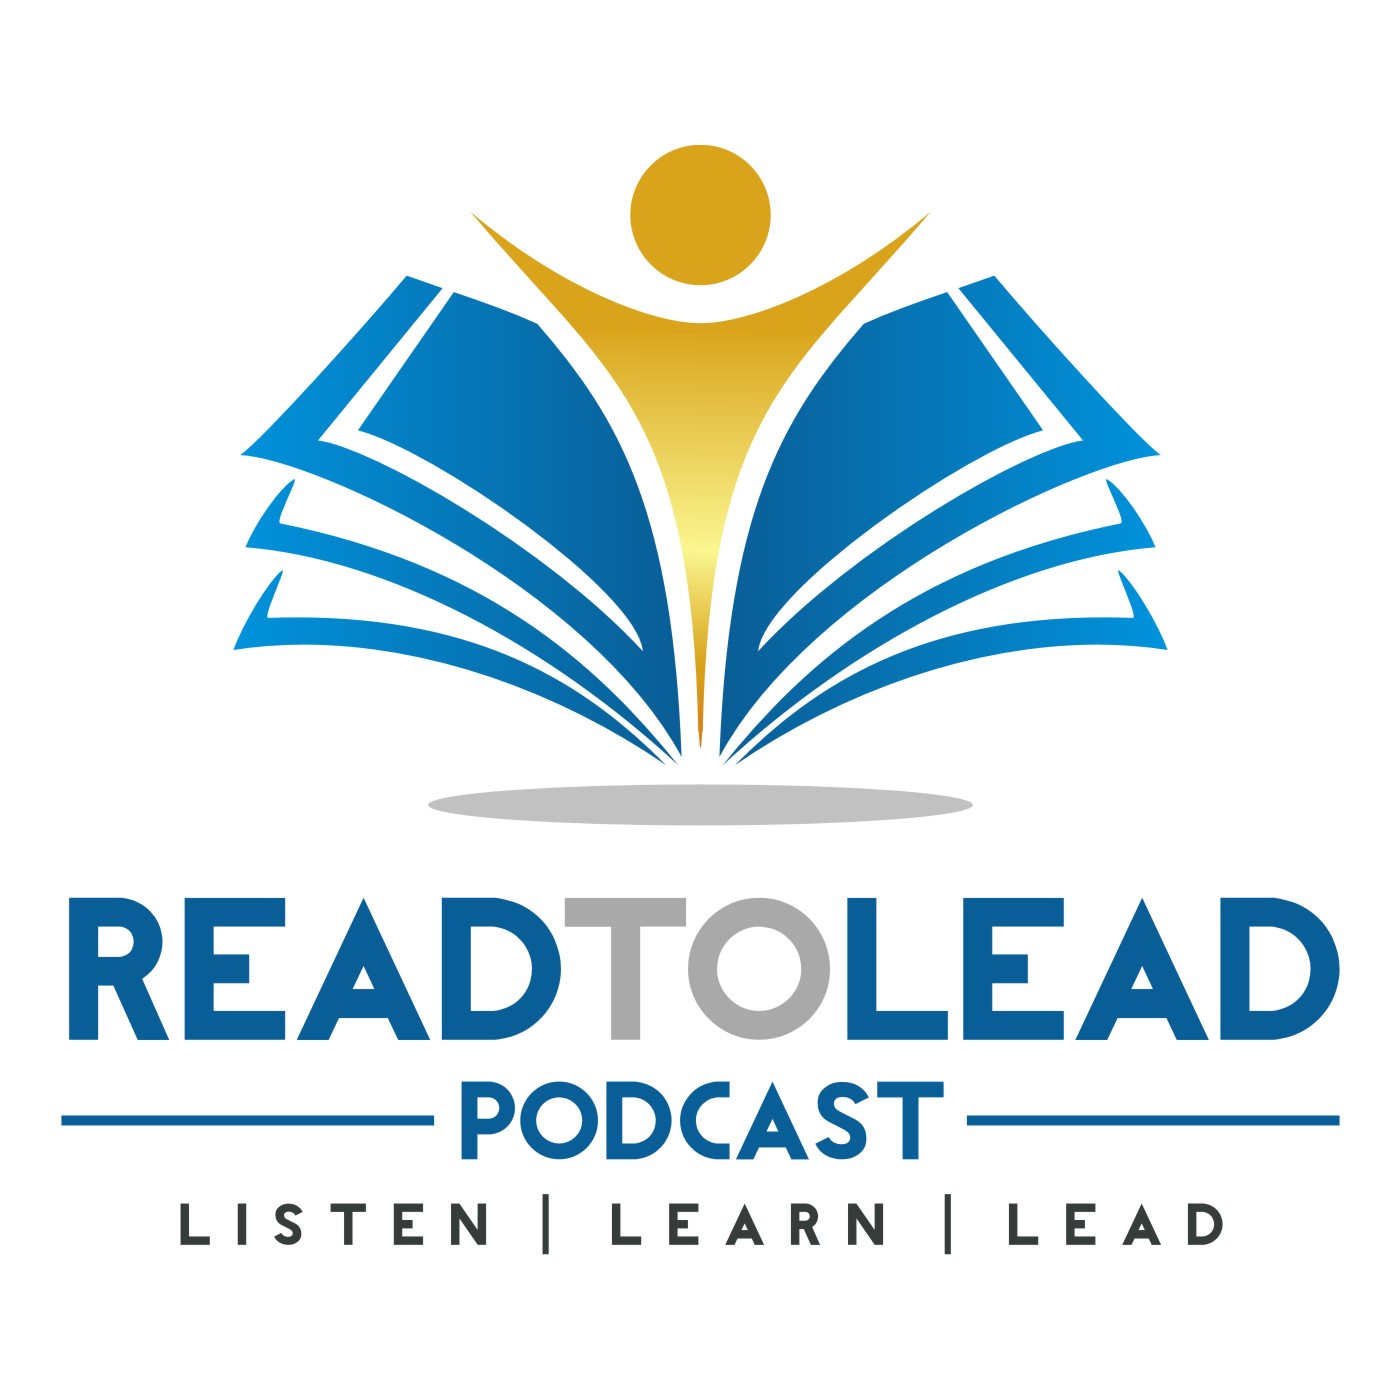 Read to Lead Podcast | Business book author interviews with award-winning broadcast industry veteran Jeff Brown